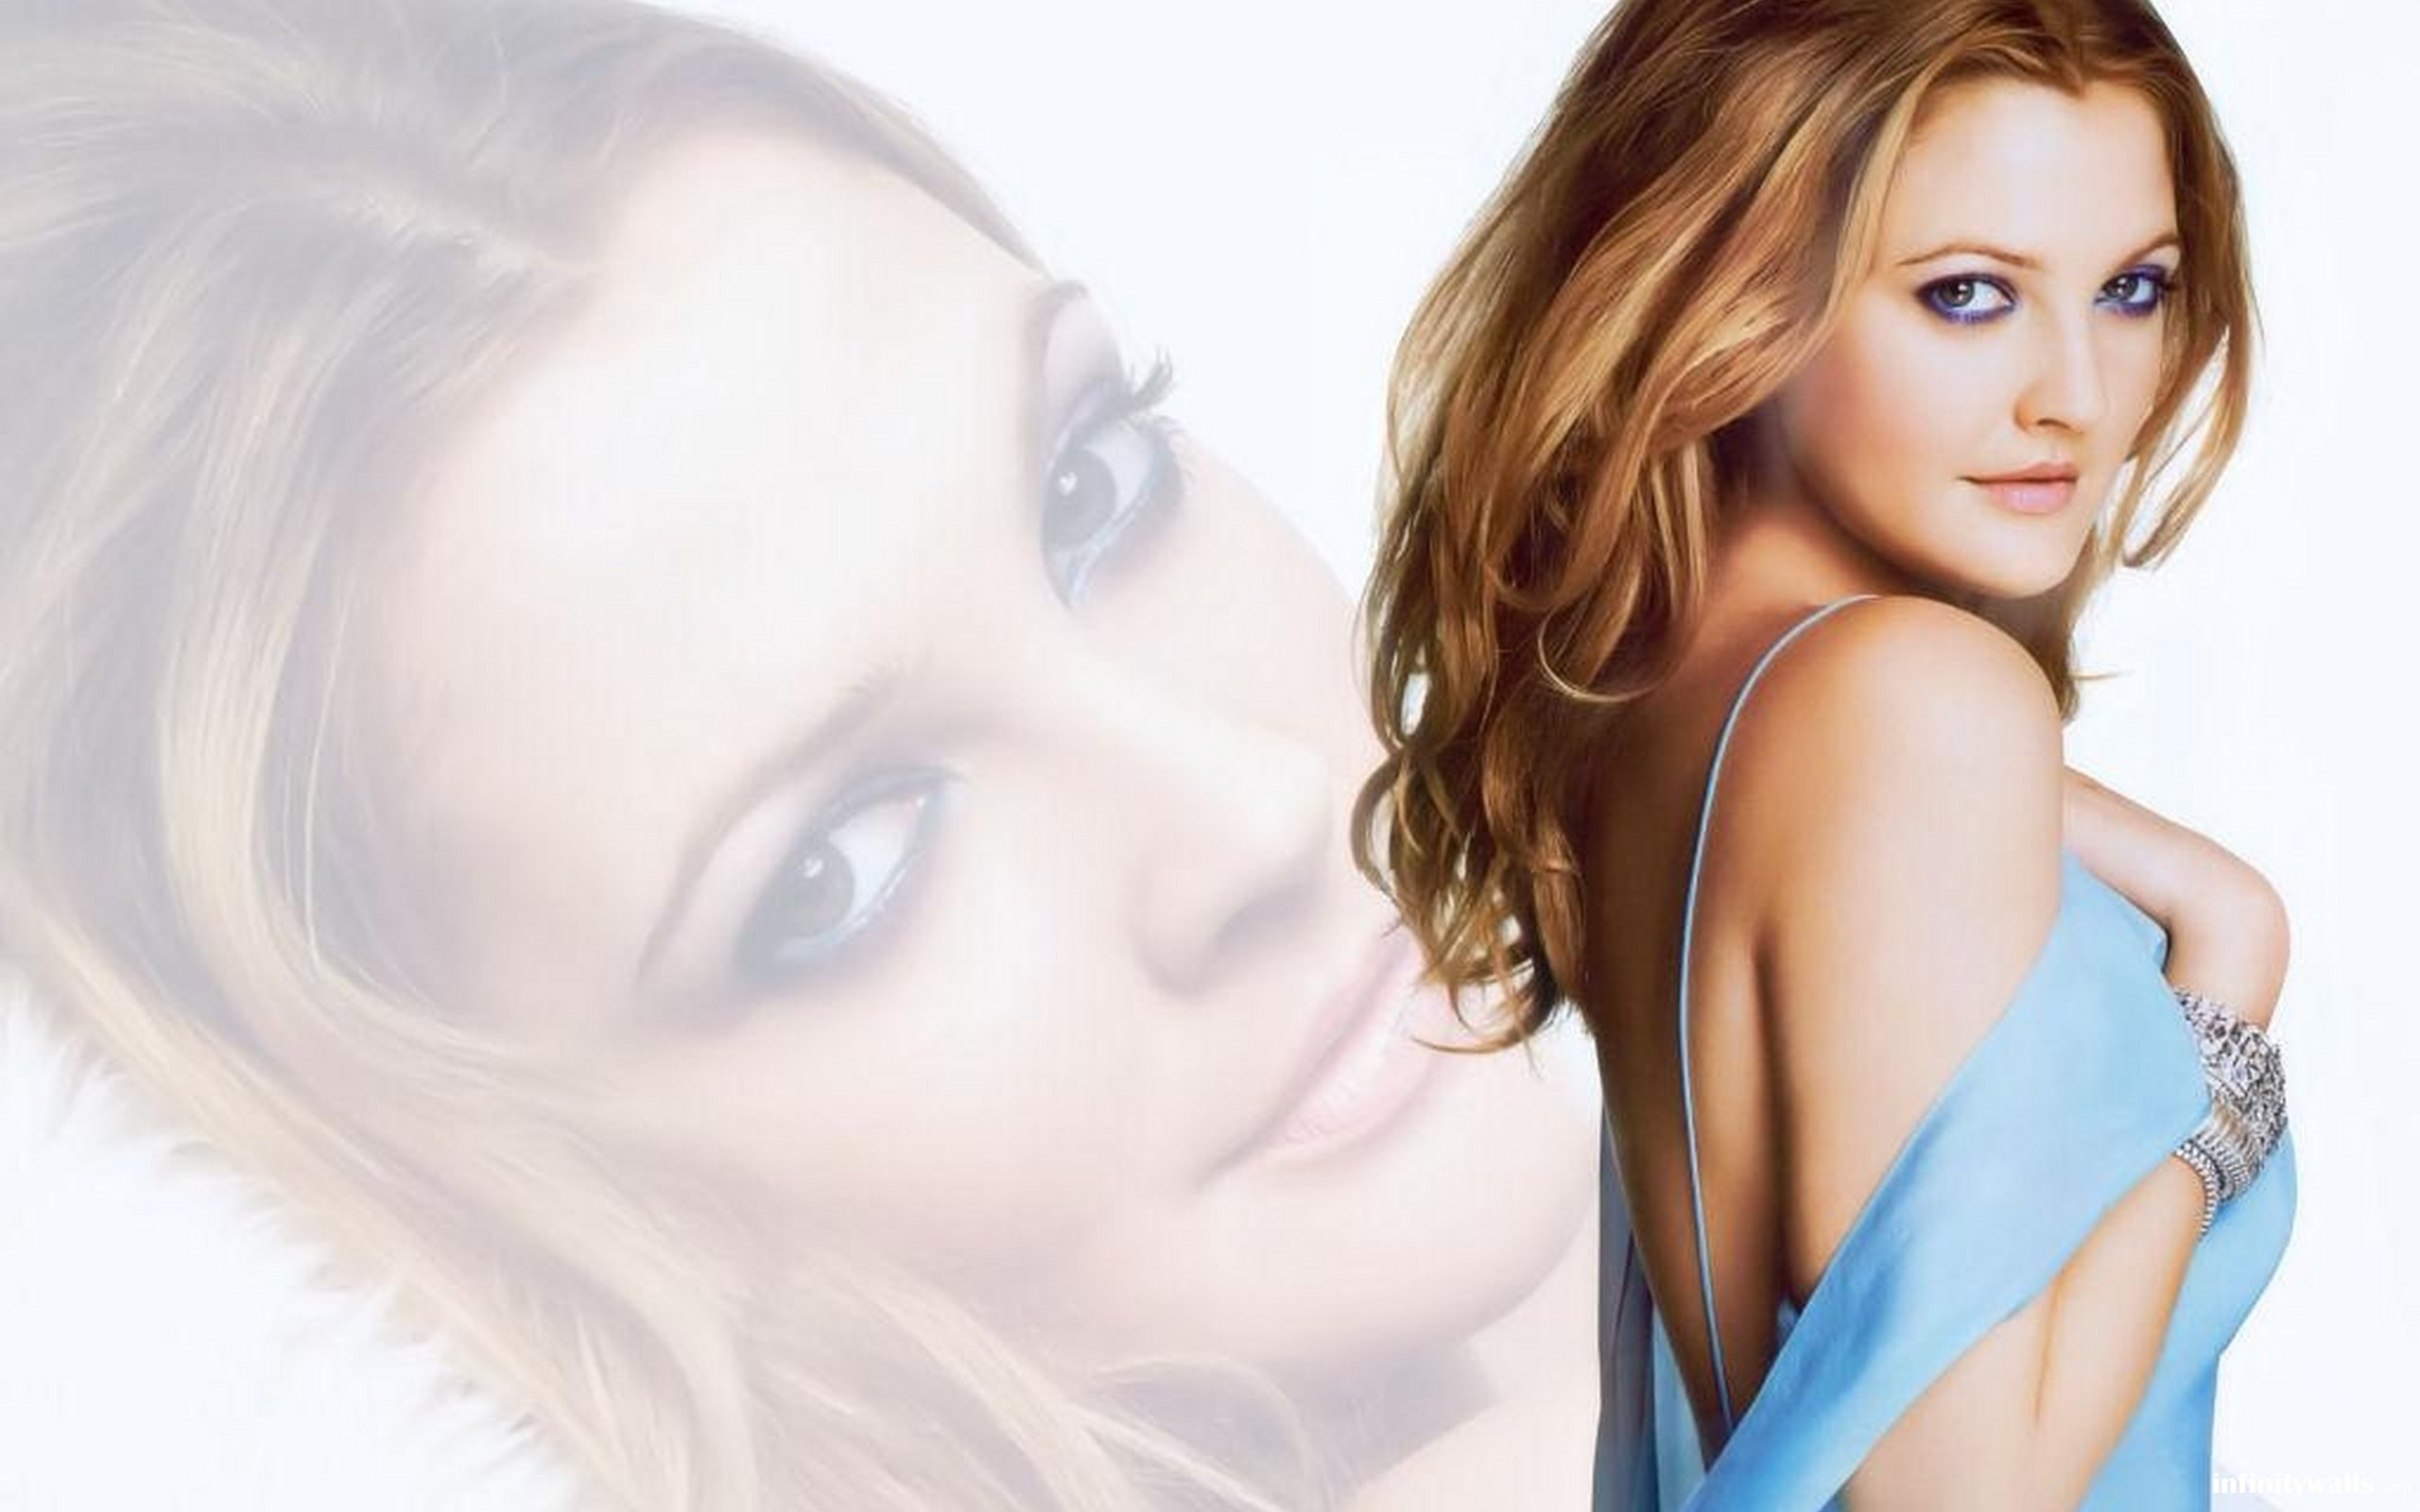 High resolution Drew Barrymore hd 2560x1600 background ID:83638 for desktop